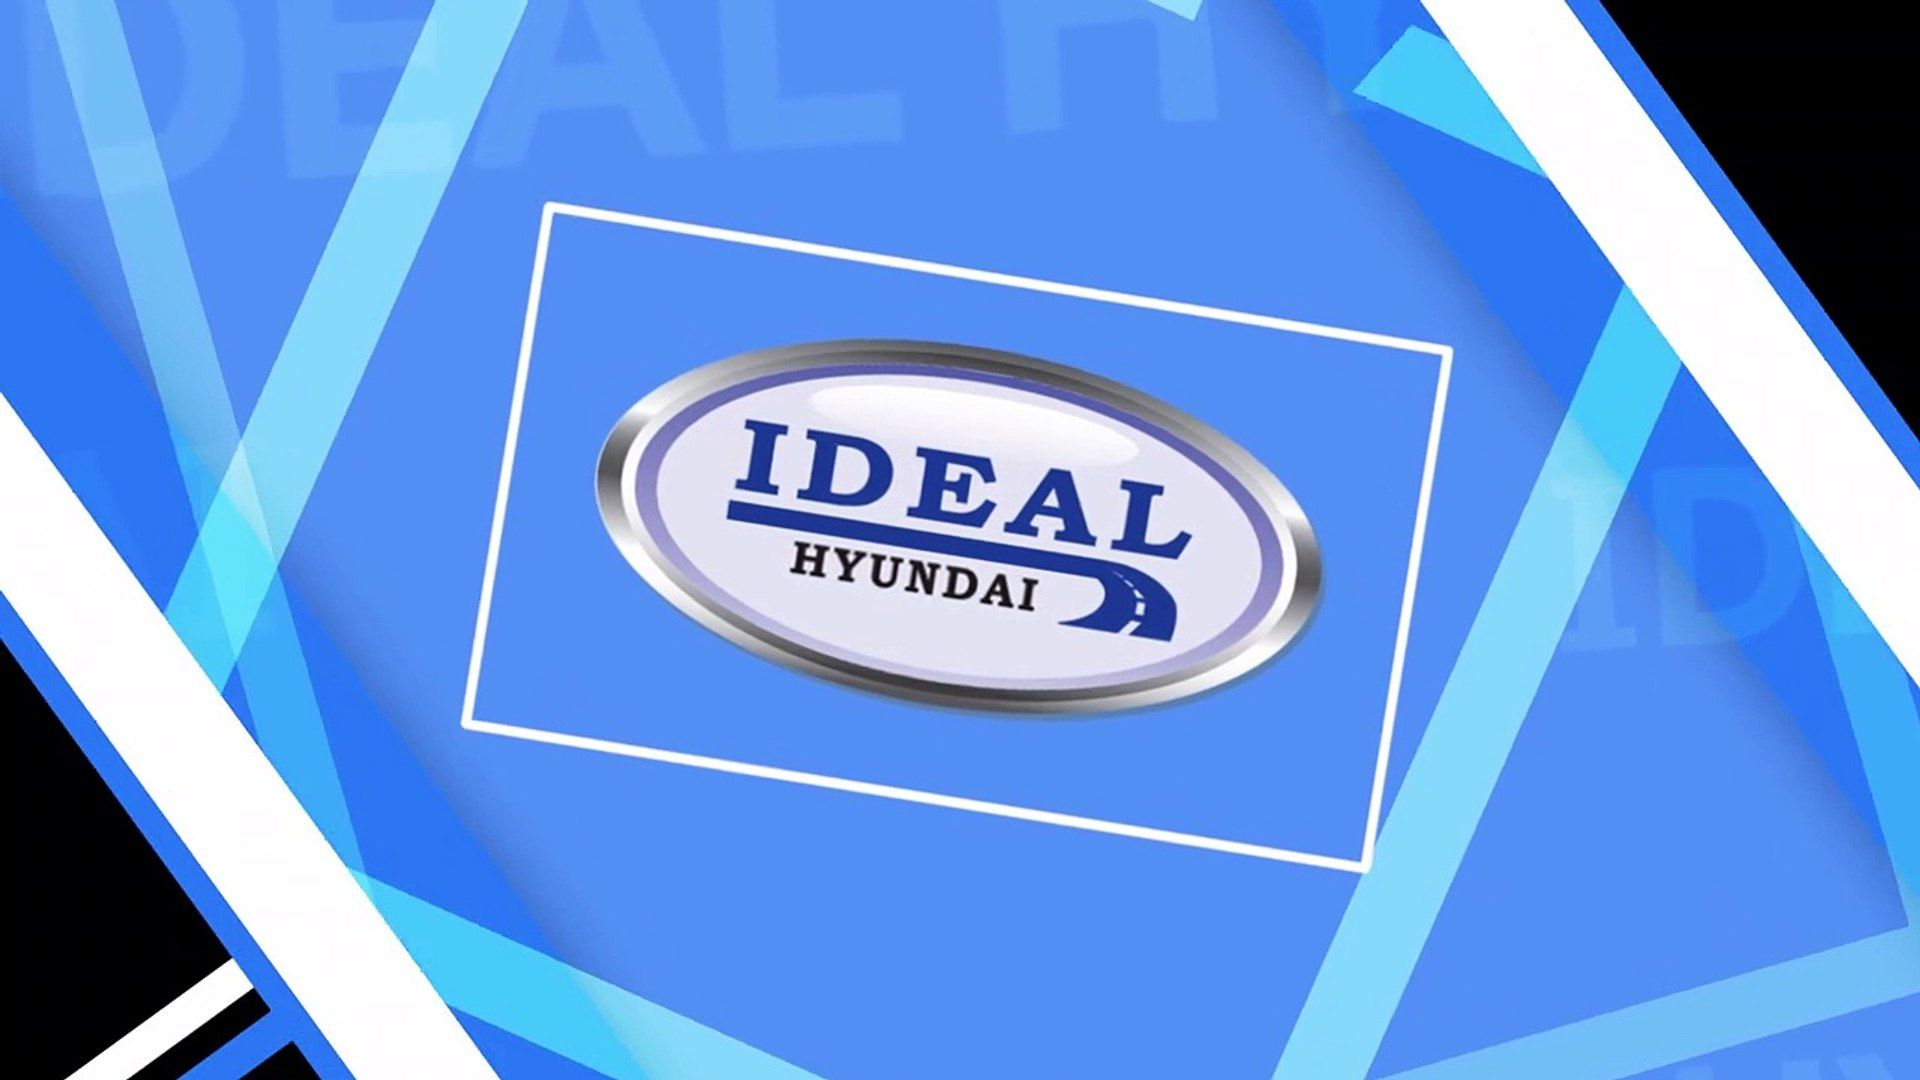 hyundai dealership frederick md hyundai hagerstown md video dailymotion dailymotion